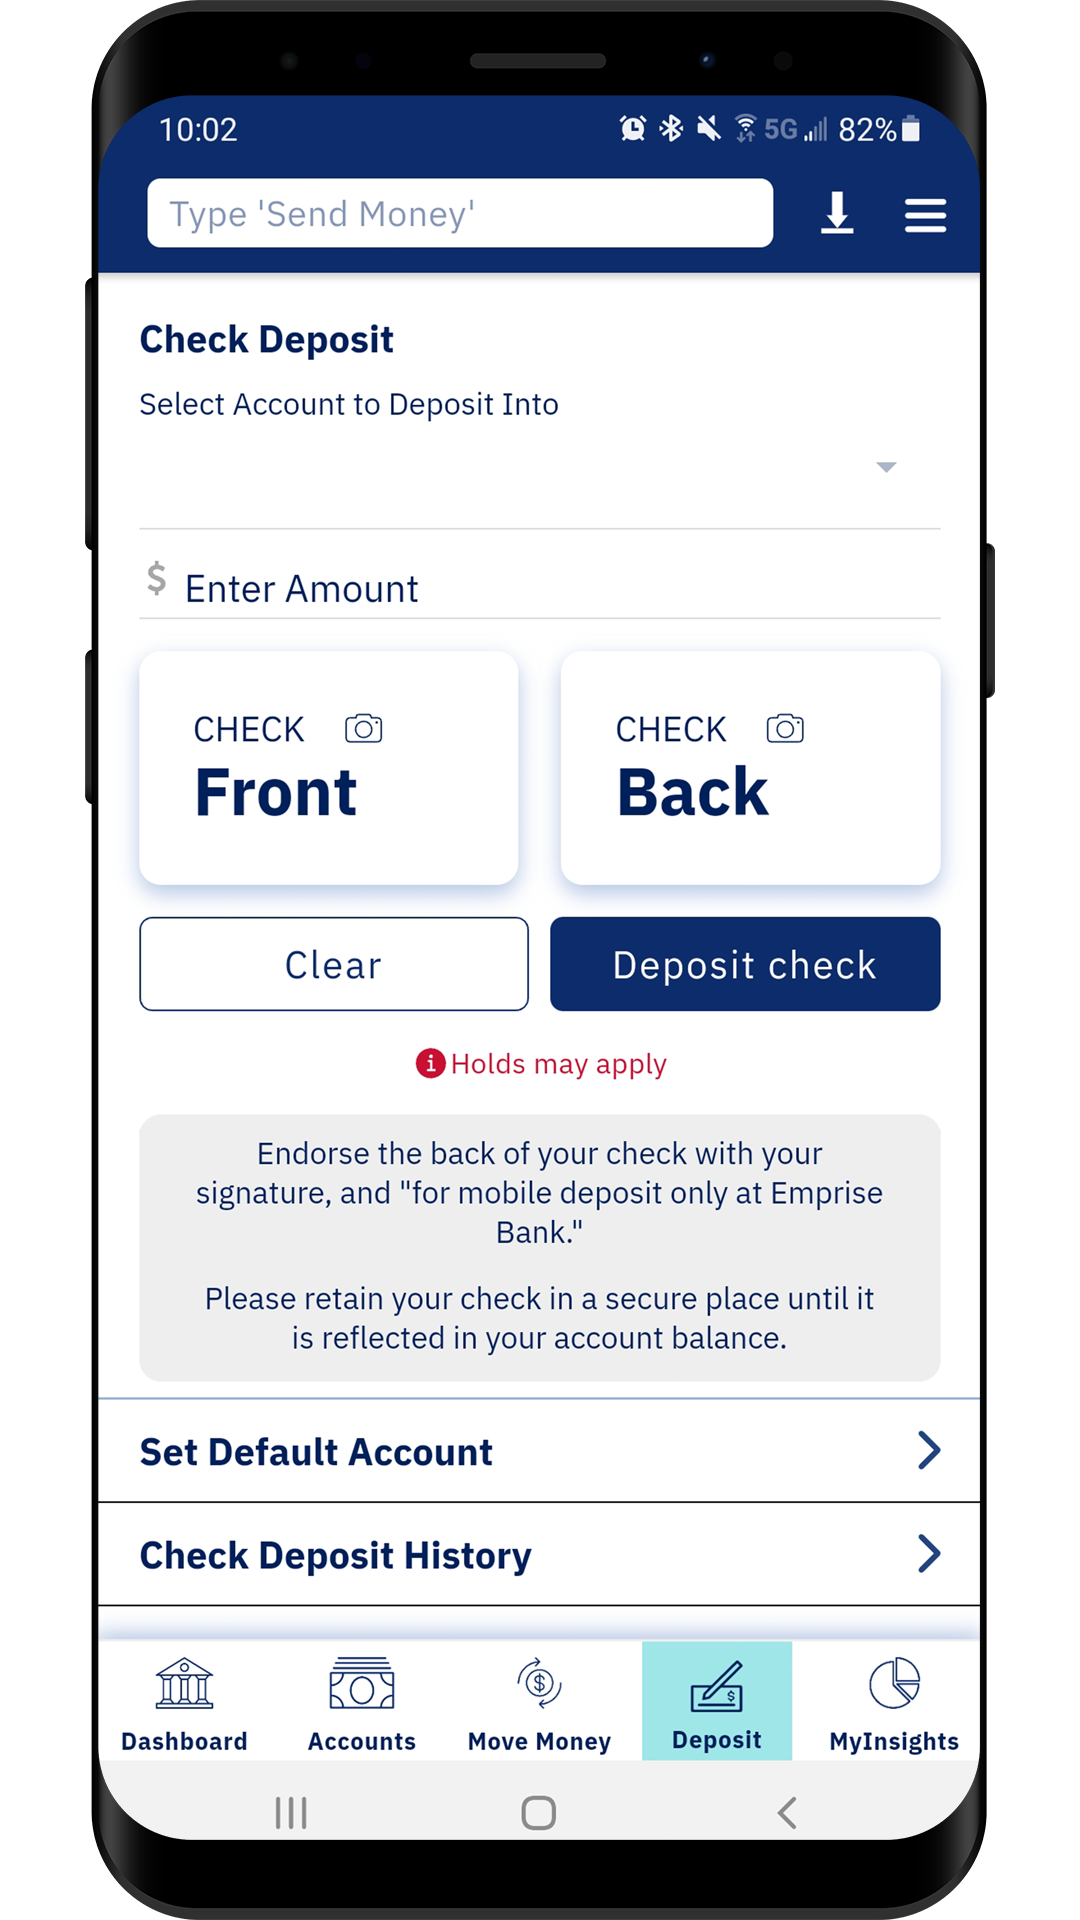 phone screen shows mobile deposit screen with options to photograph front and back of check and deposit into desired account